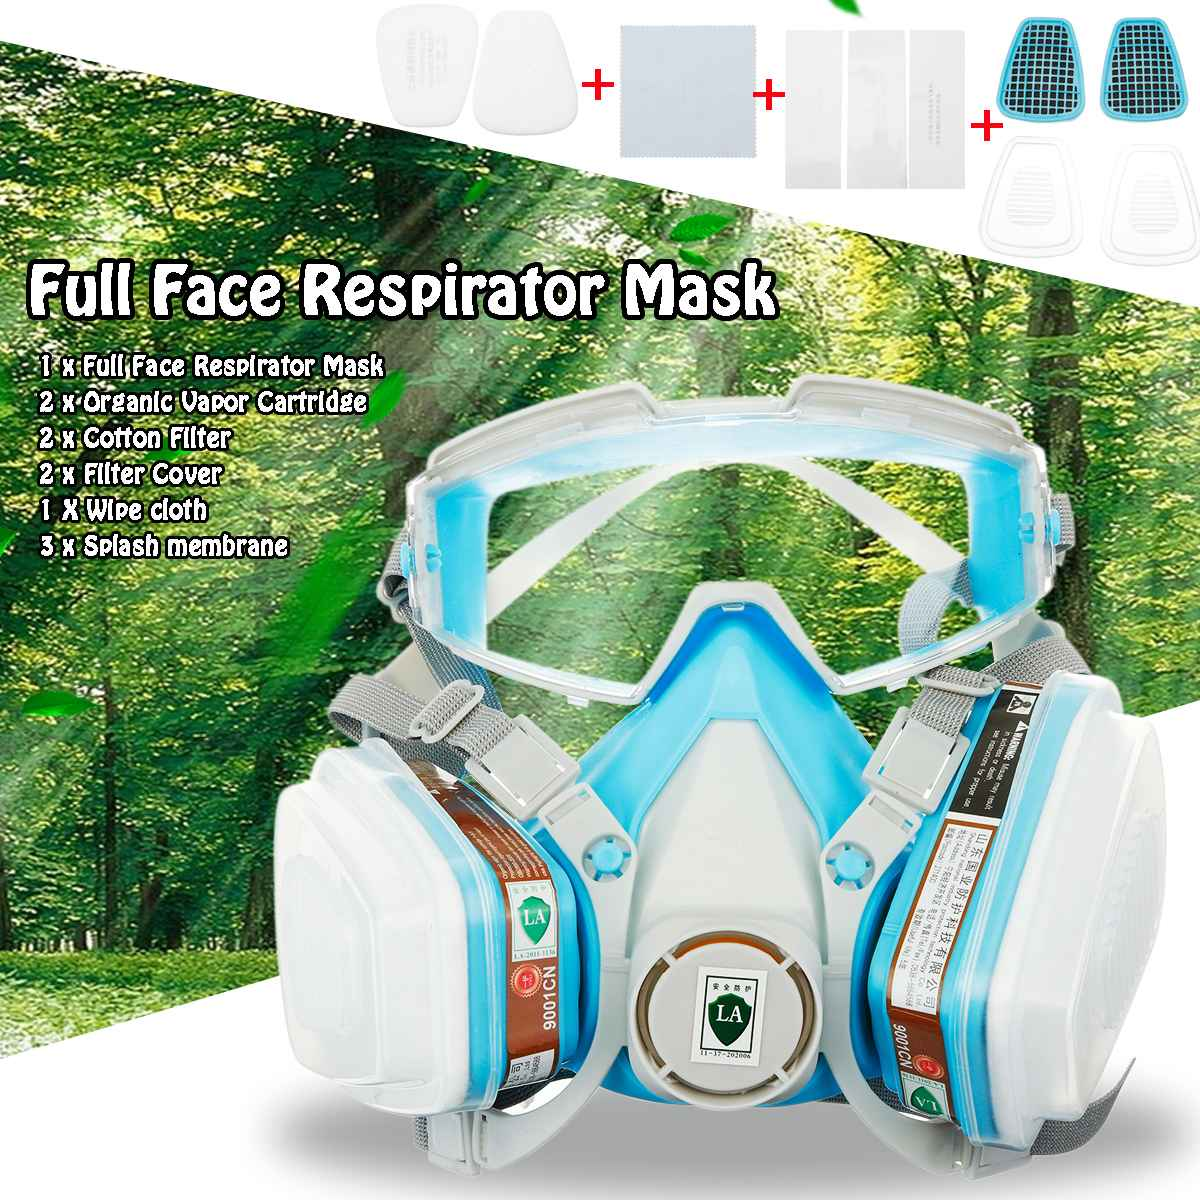 Silicone Full Face Respirator Gas Mask Goggles Comprehensive Cover Paint Chemical Pesticide Mask Anti Dust Protective Mask